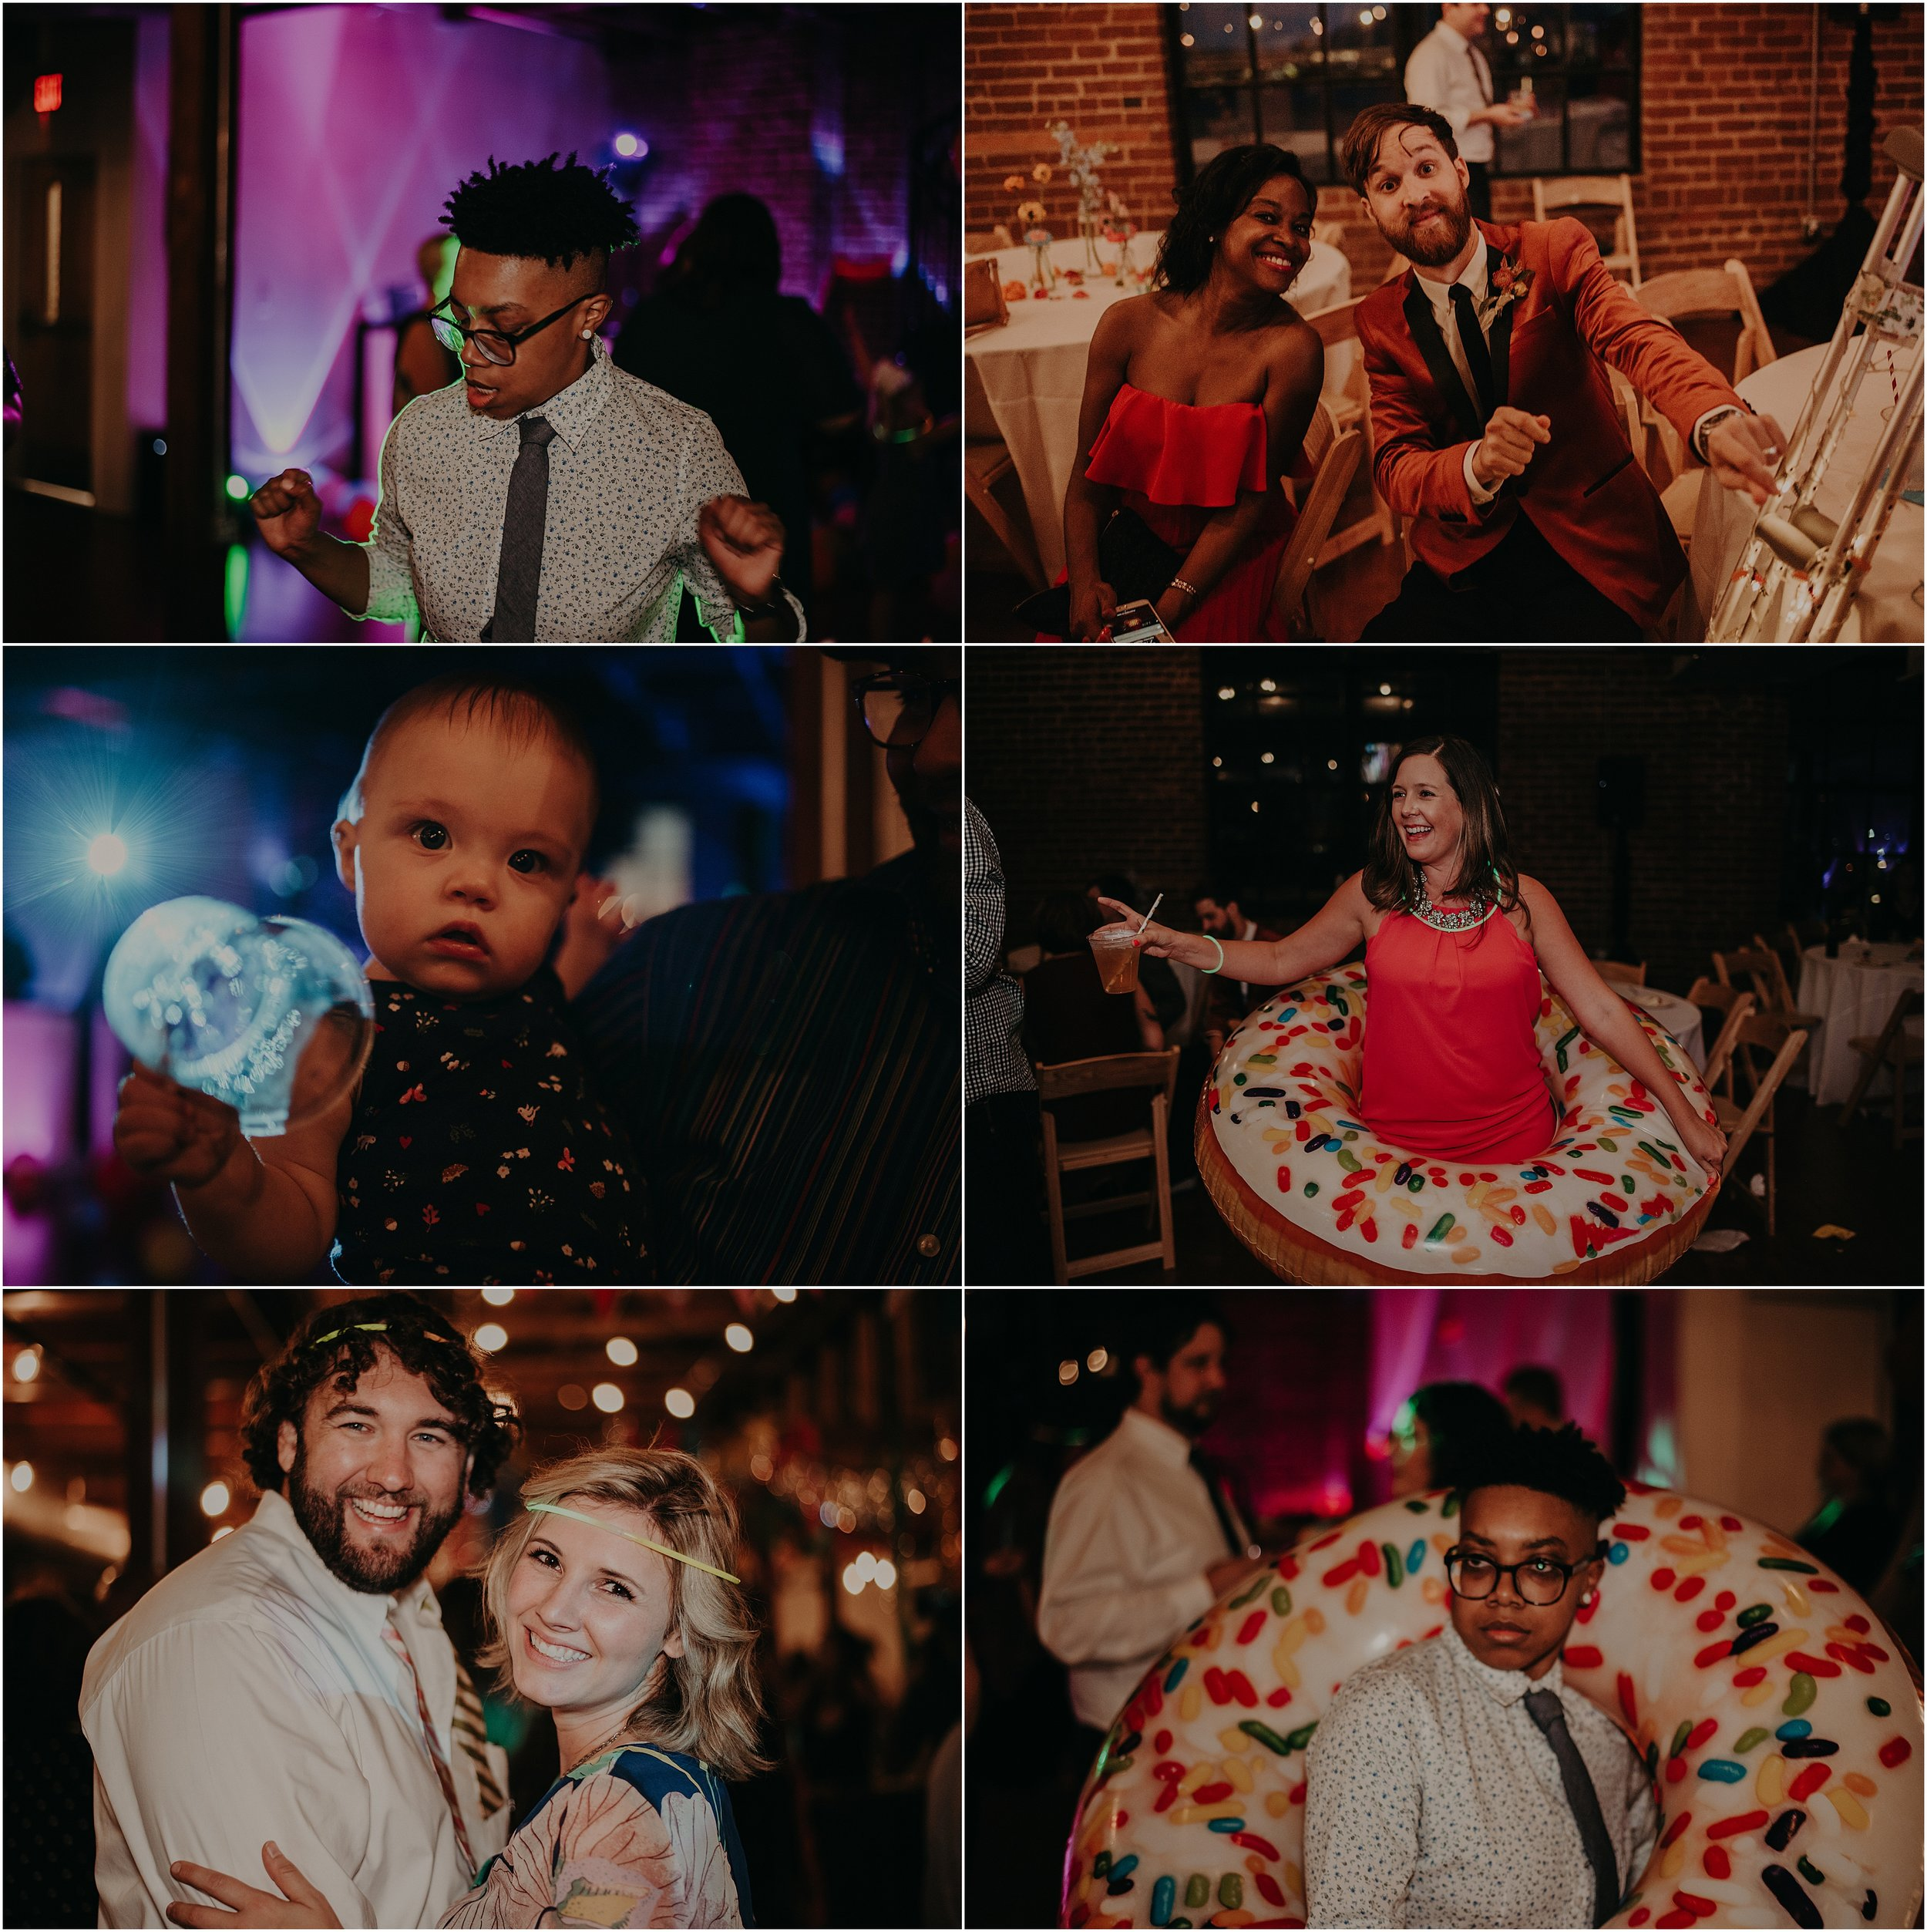 Music-festival inspired wedding reception gets wild